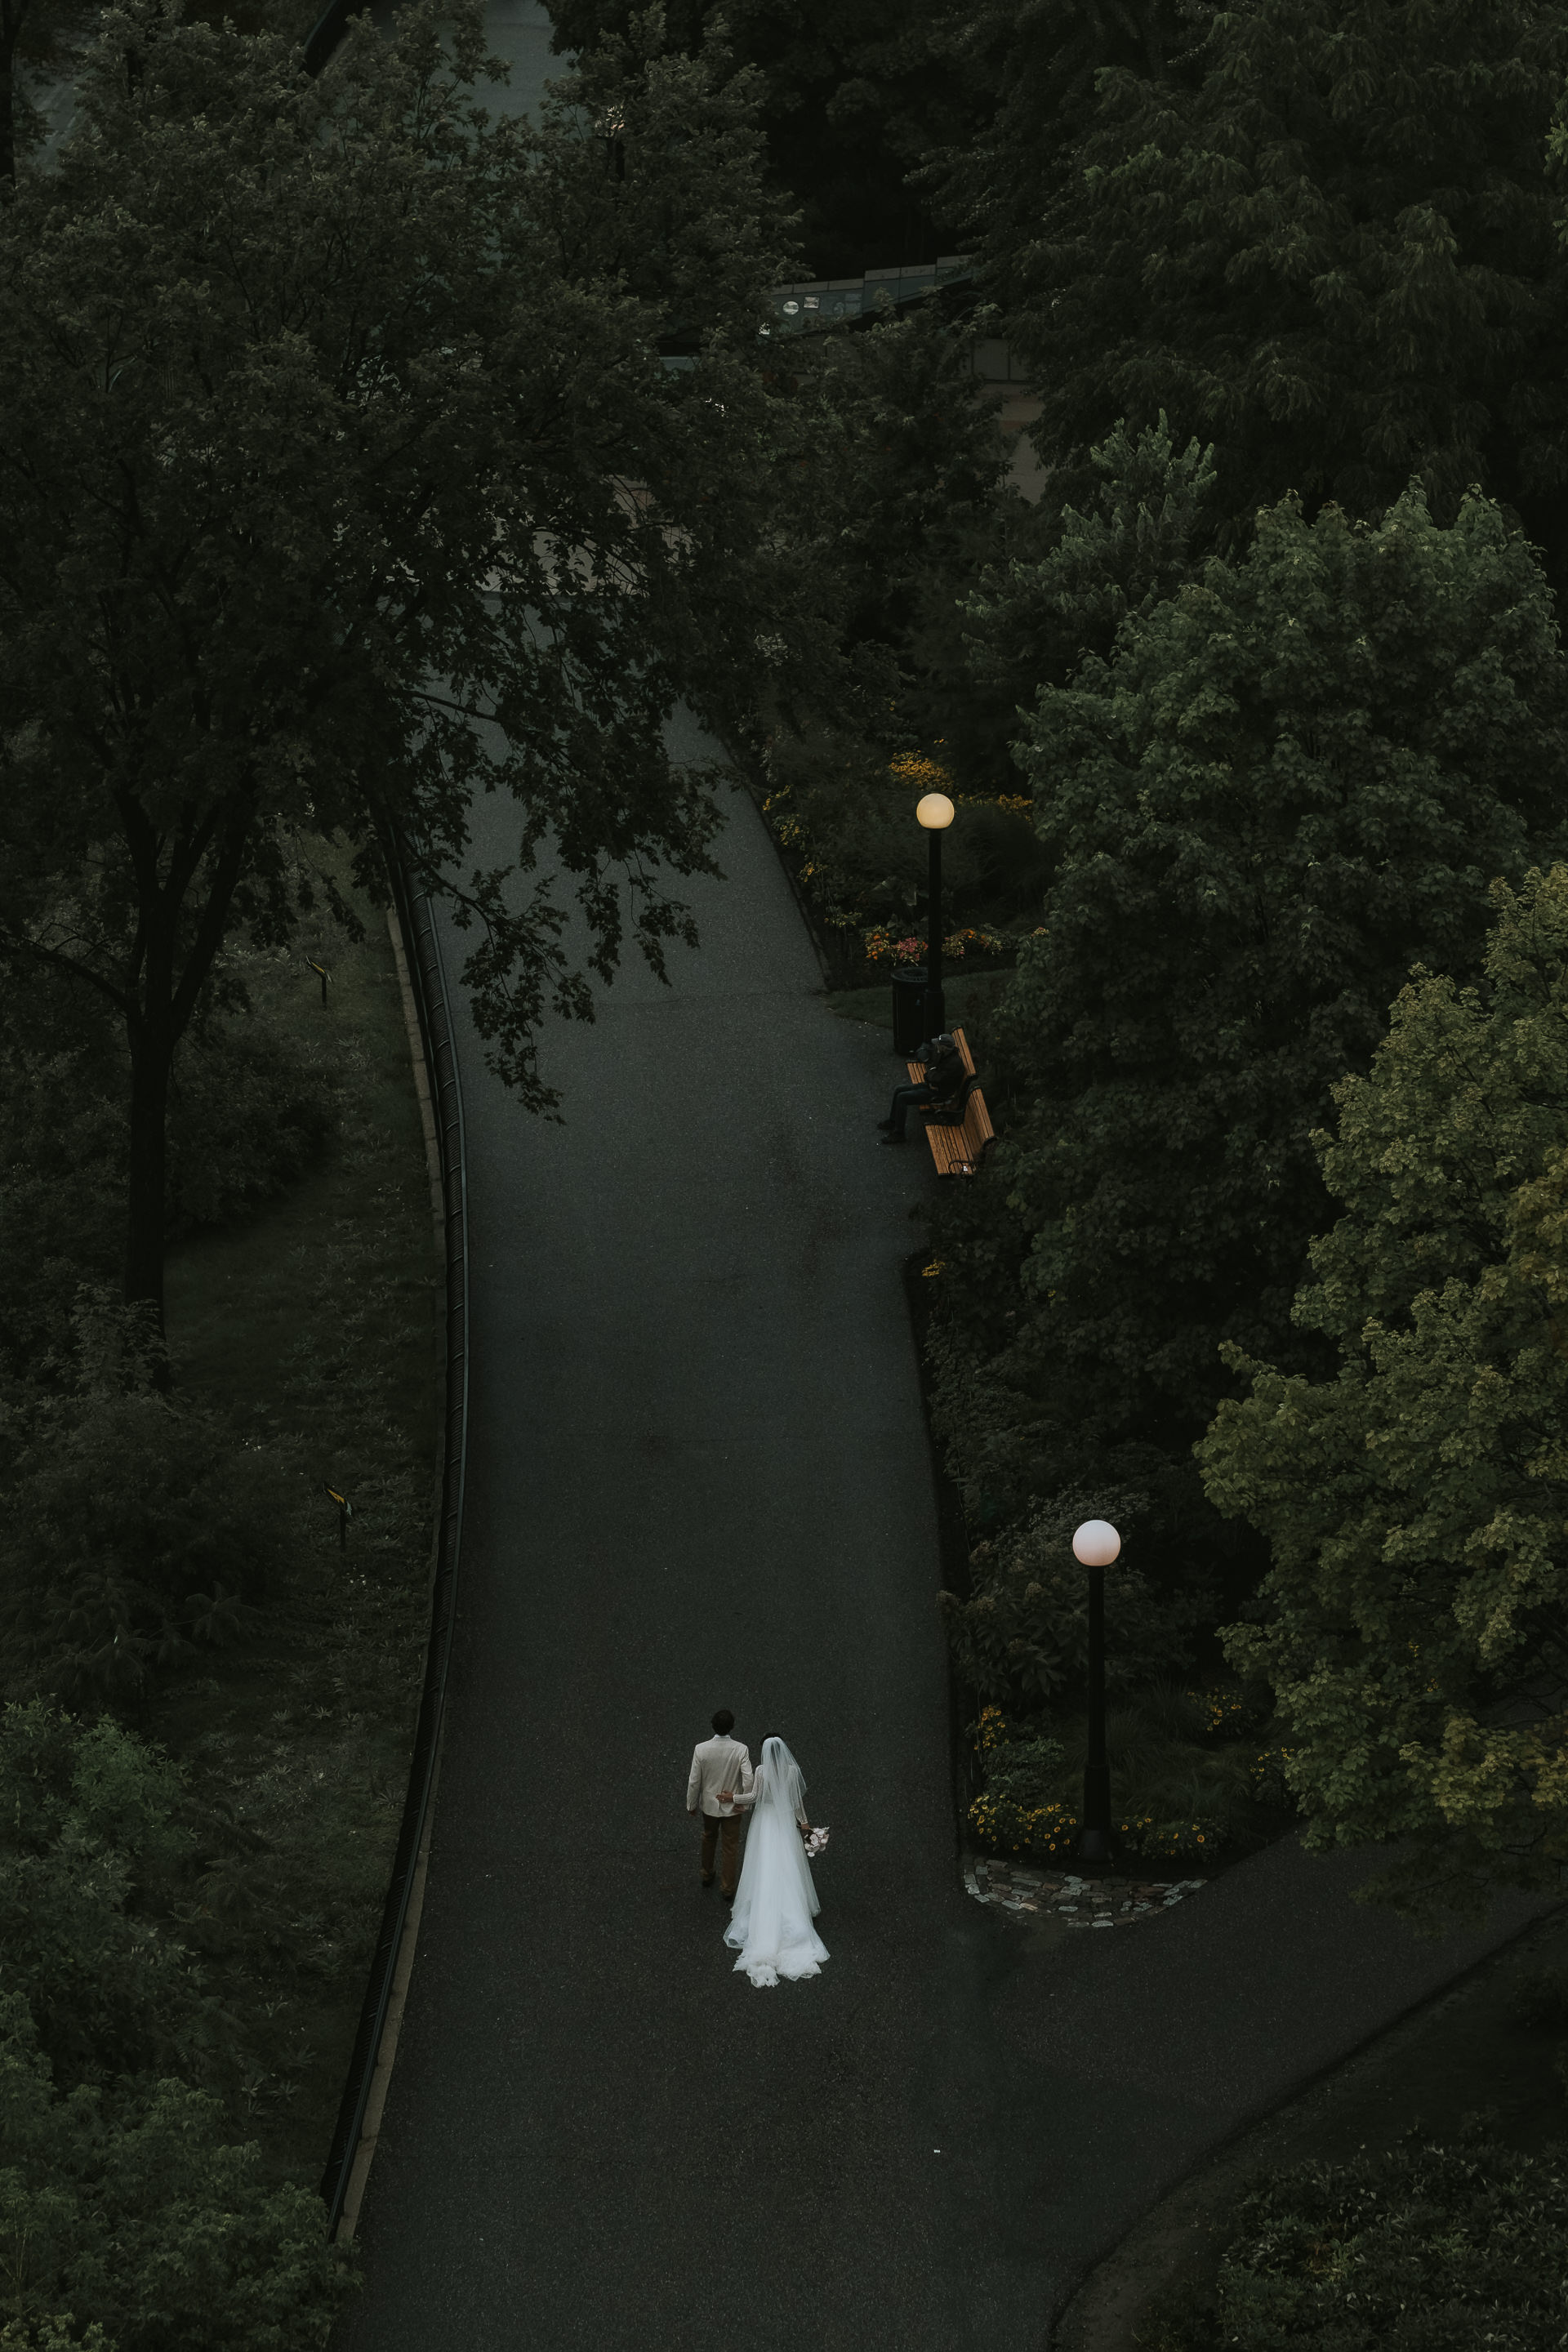 Aerial view of bride and groom on evening walk photographed by Joel & Justyna - Ottawa wedding photographers